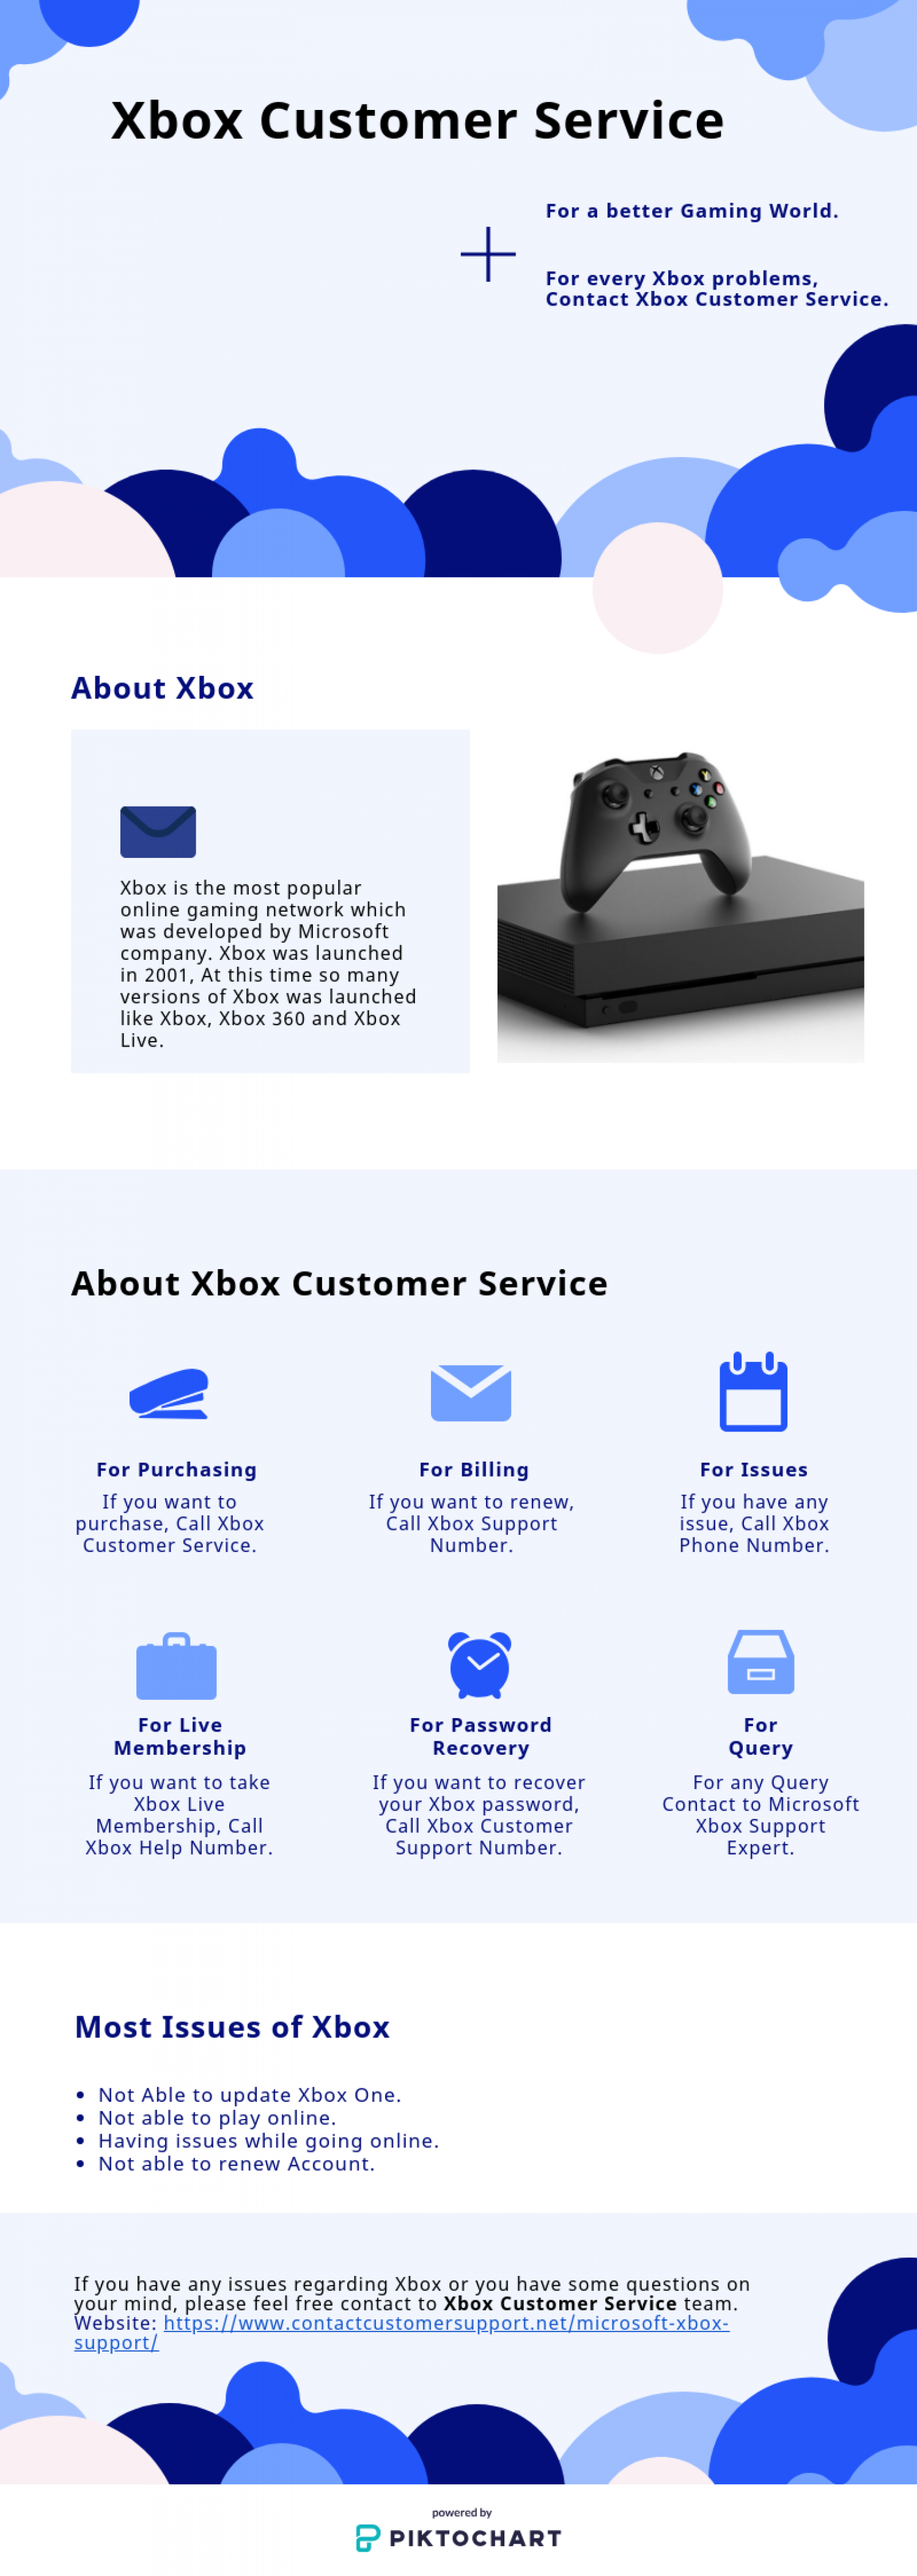 Xbox Customer Service Infographic